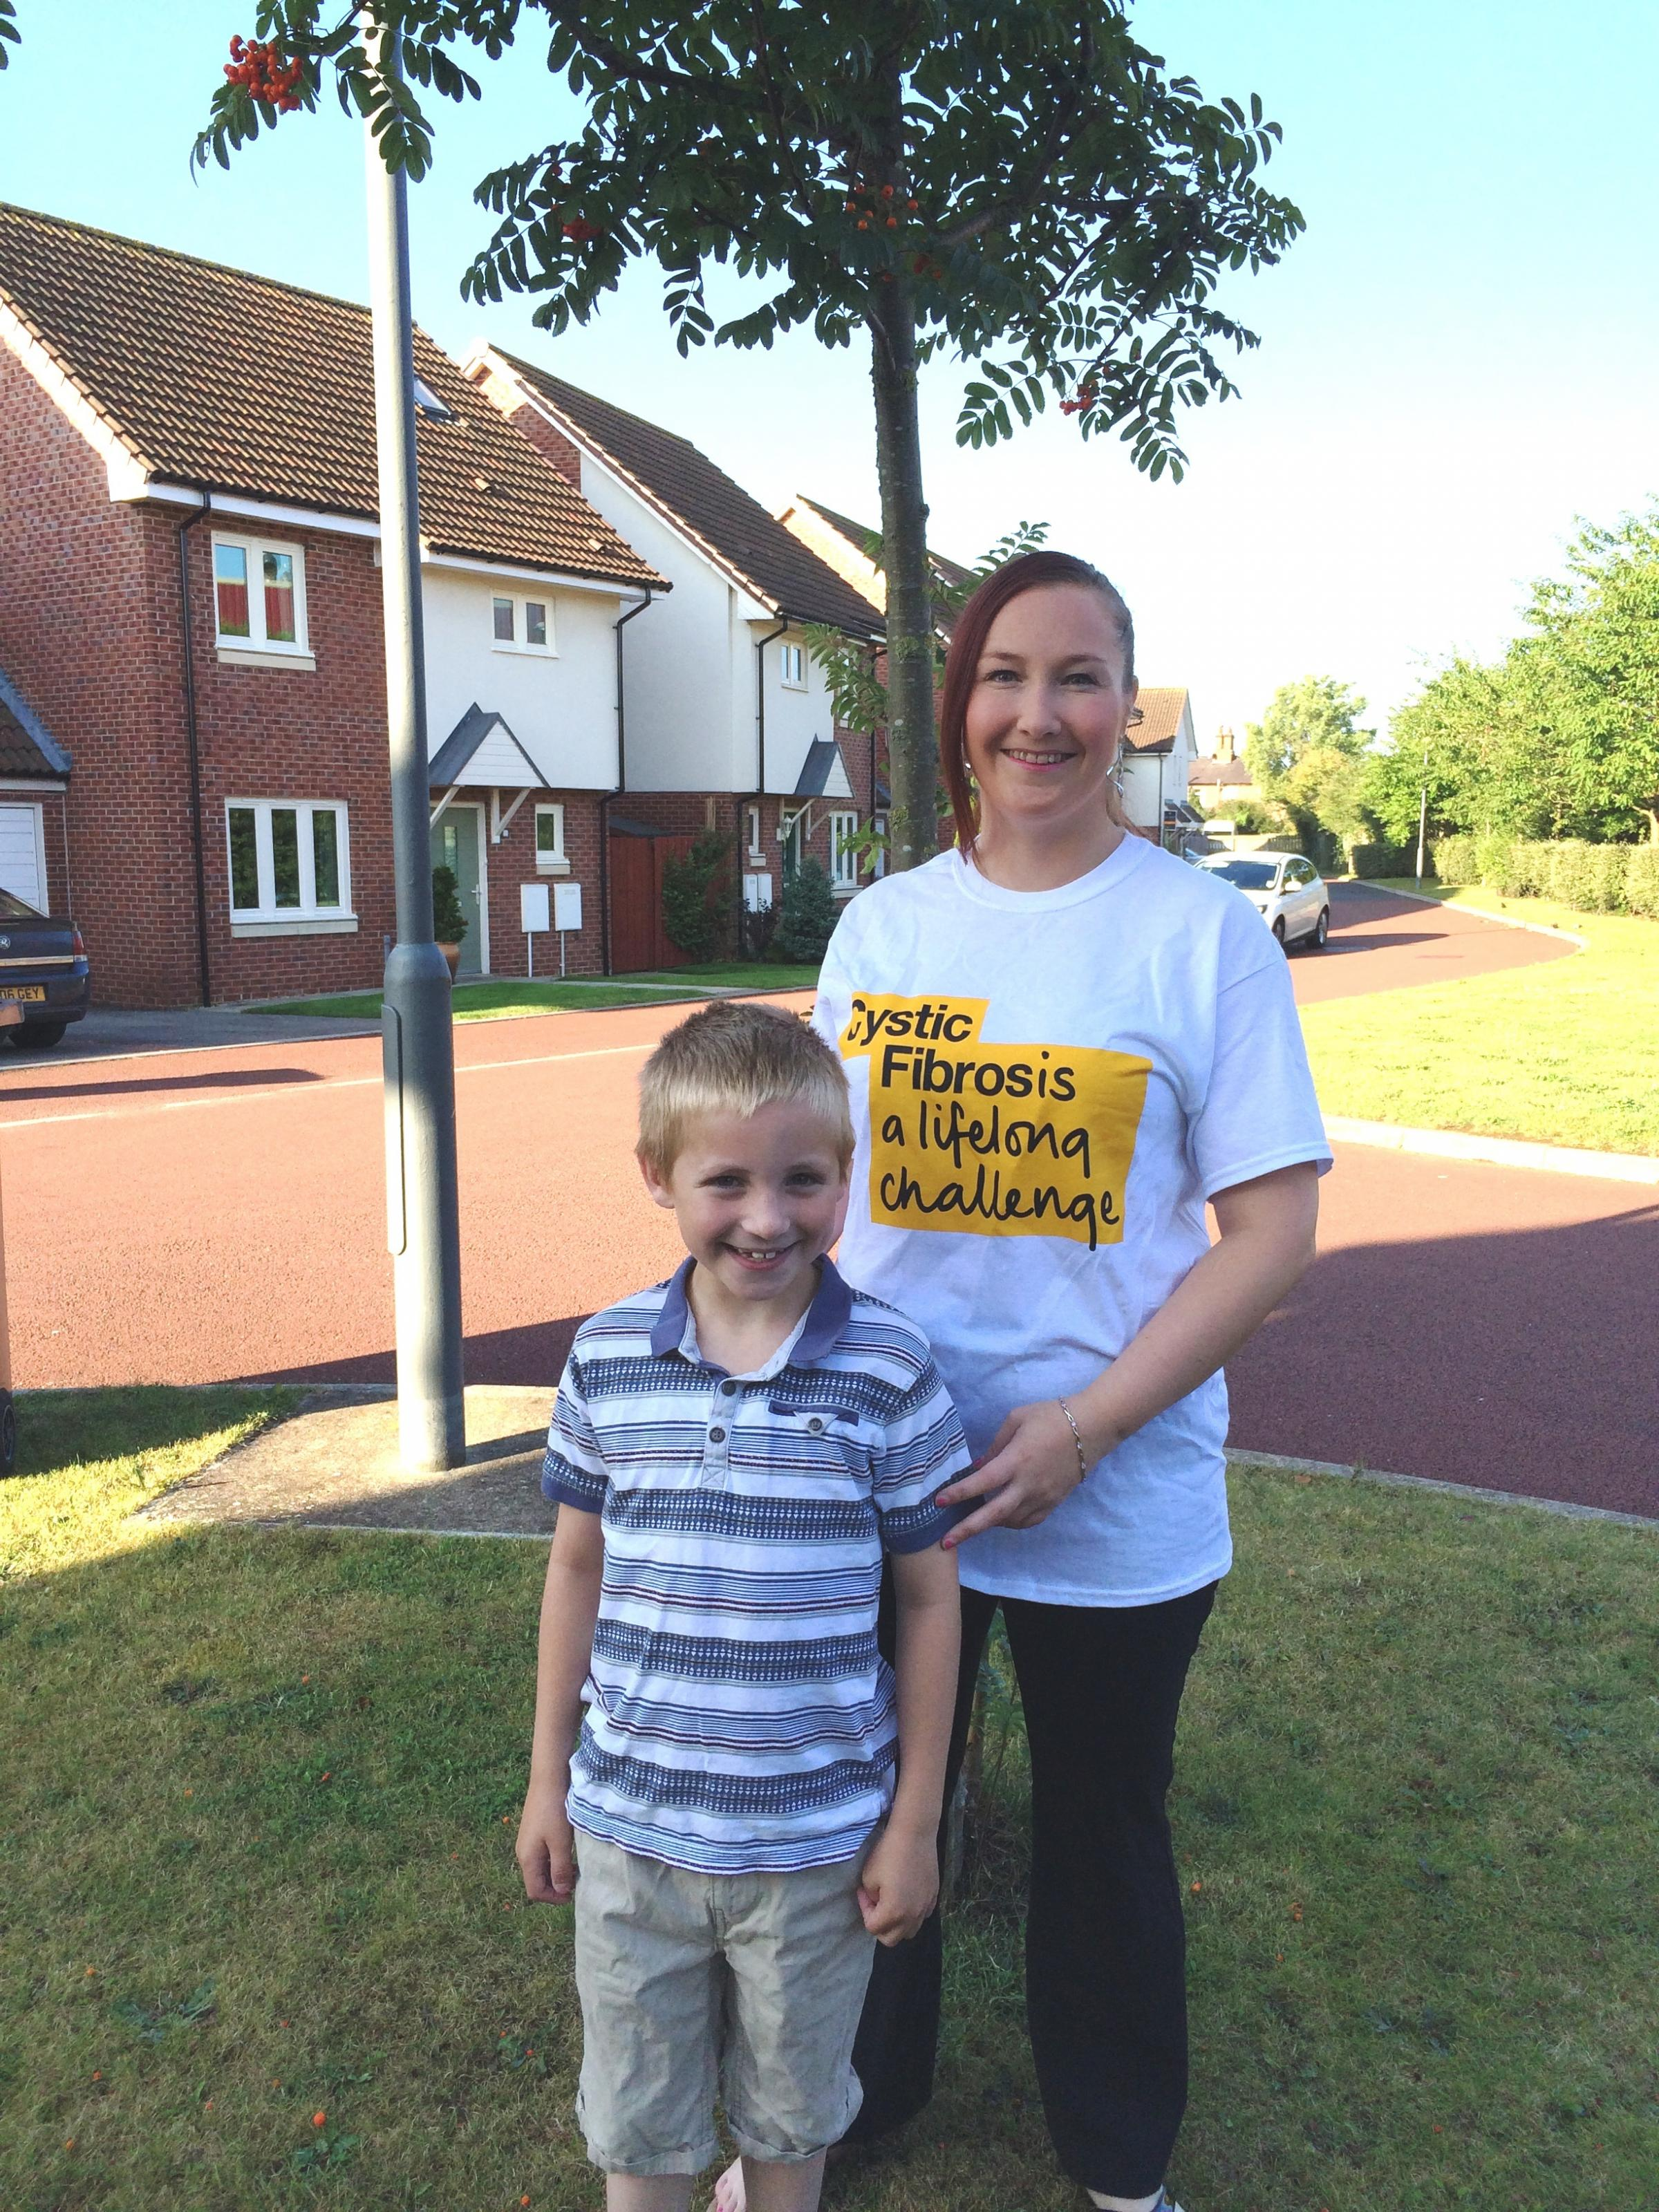 MOUNTAIN CHALLENGE: Emma Smith with her son Jack. Emma will be climbing Ben Nevis to raise money for the Cystic Fibrosis Trust which helps cystic fibrosis sufferers like her son Jack